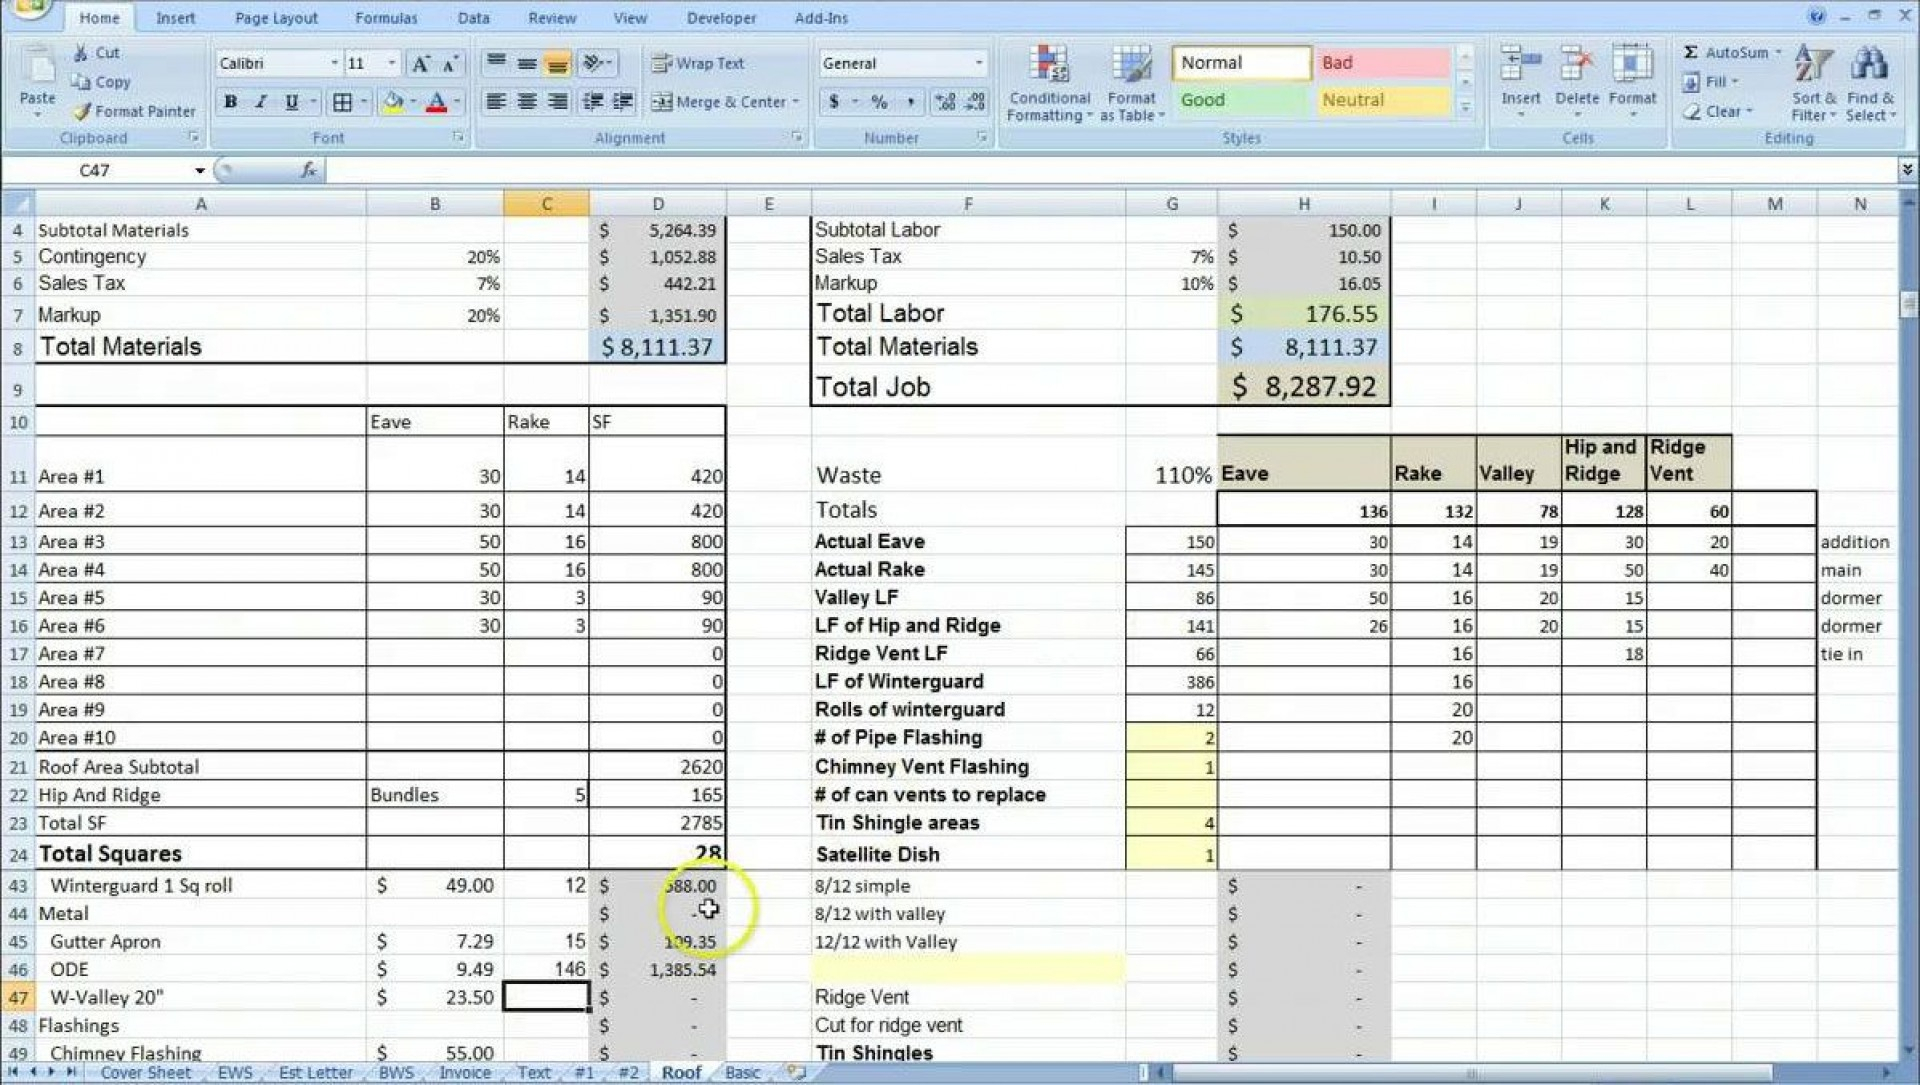 Job Costing Spreadsheet Excel With 002 Template Ideas Construction Job Cost Spreadsheet With Estimate